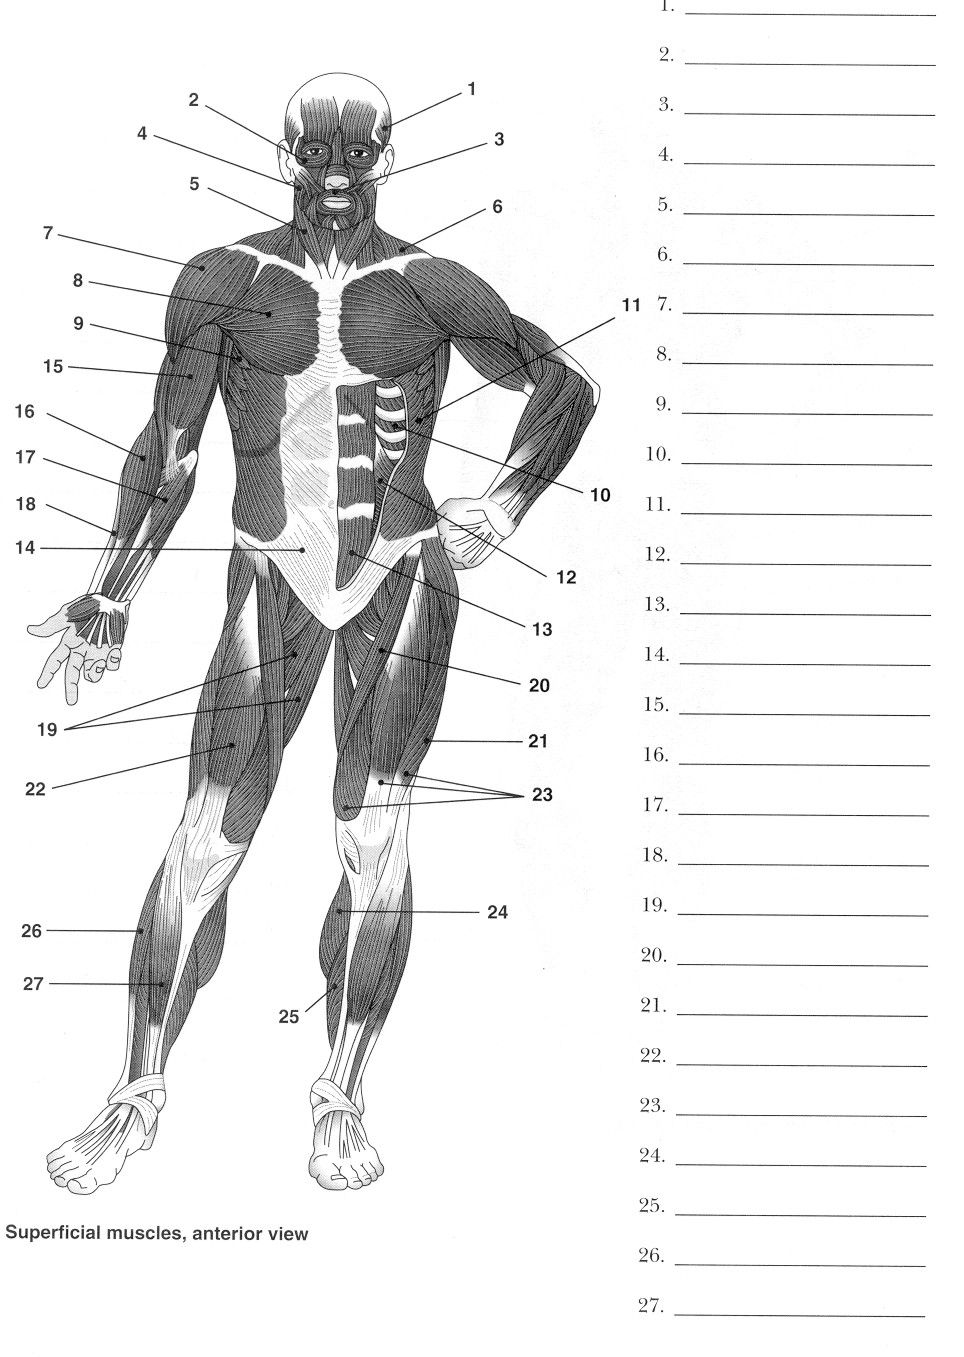 worksheet Muscles Of The Body Worksheet the integumentary system quiz or worksheet ojays words and 6 best images of printable worksheets muscle anatomy blank head neck muscles diagram muscular worksheet